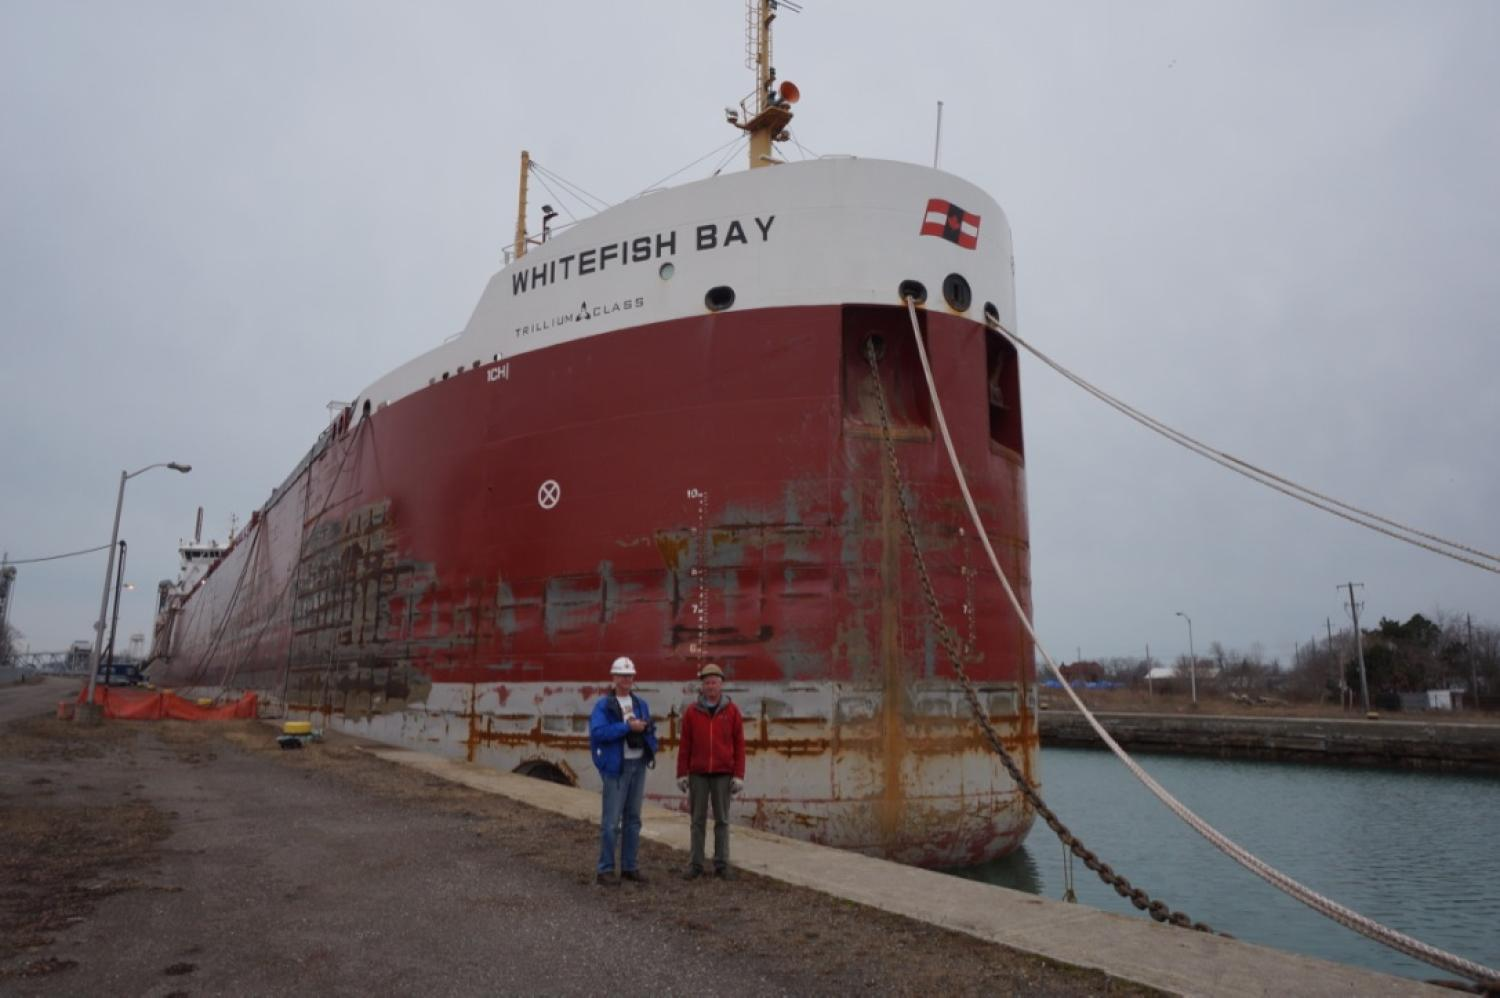 2 men on dock posing in front of large ship